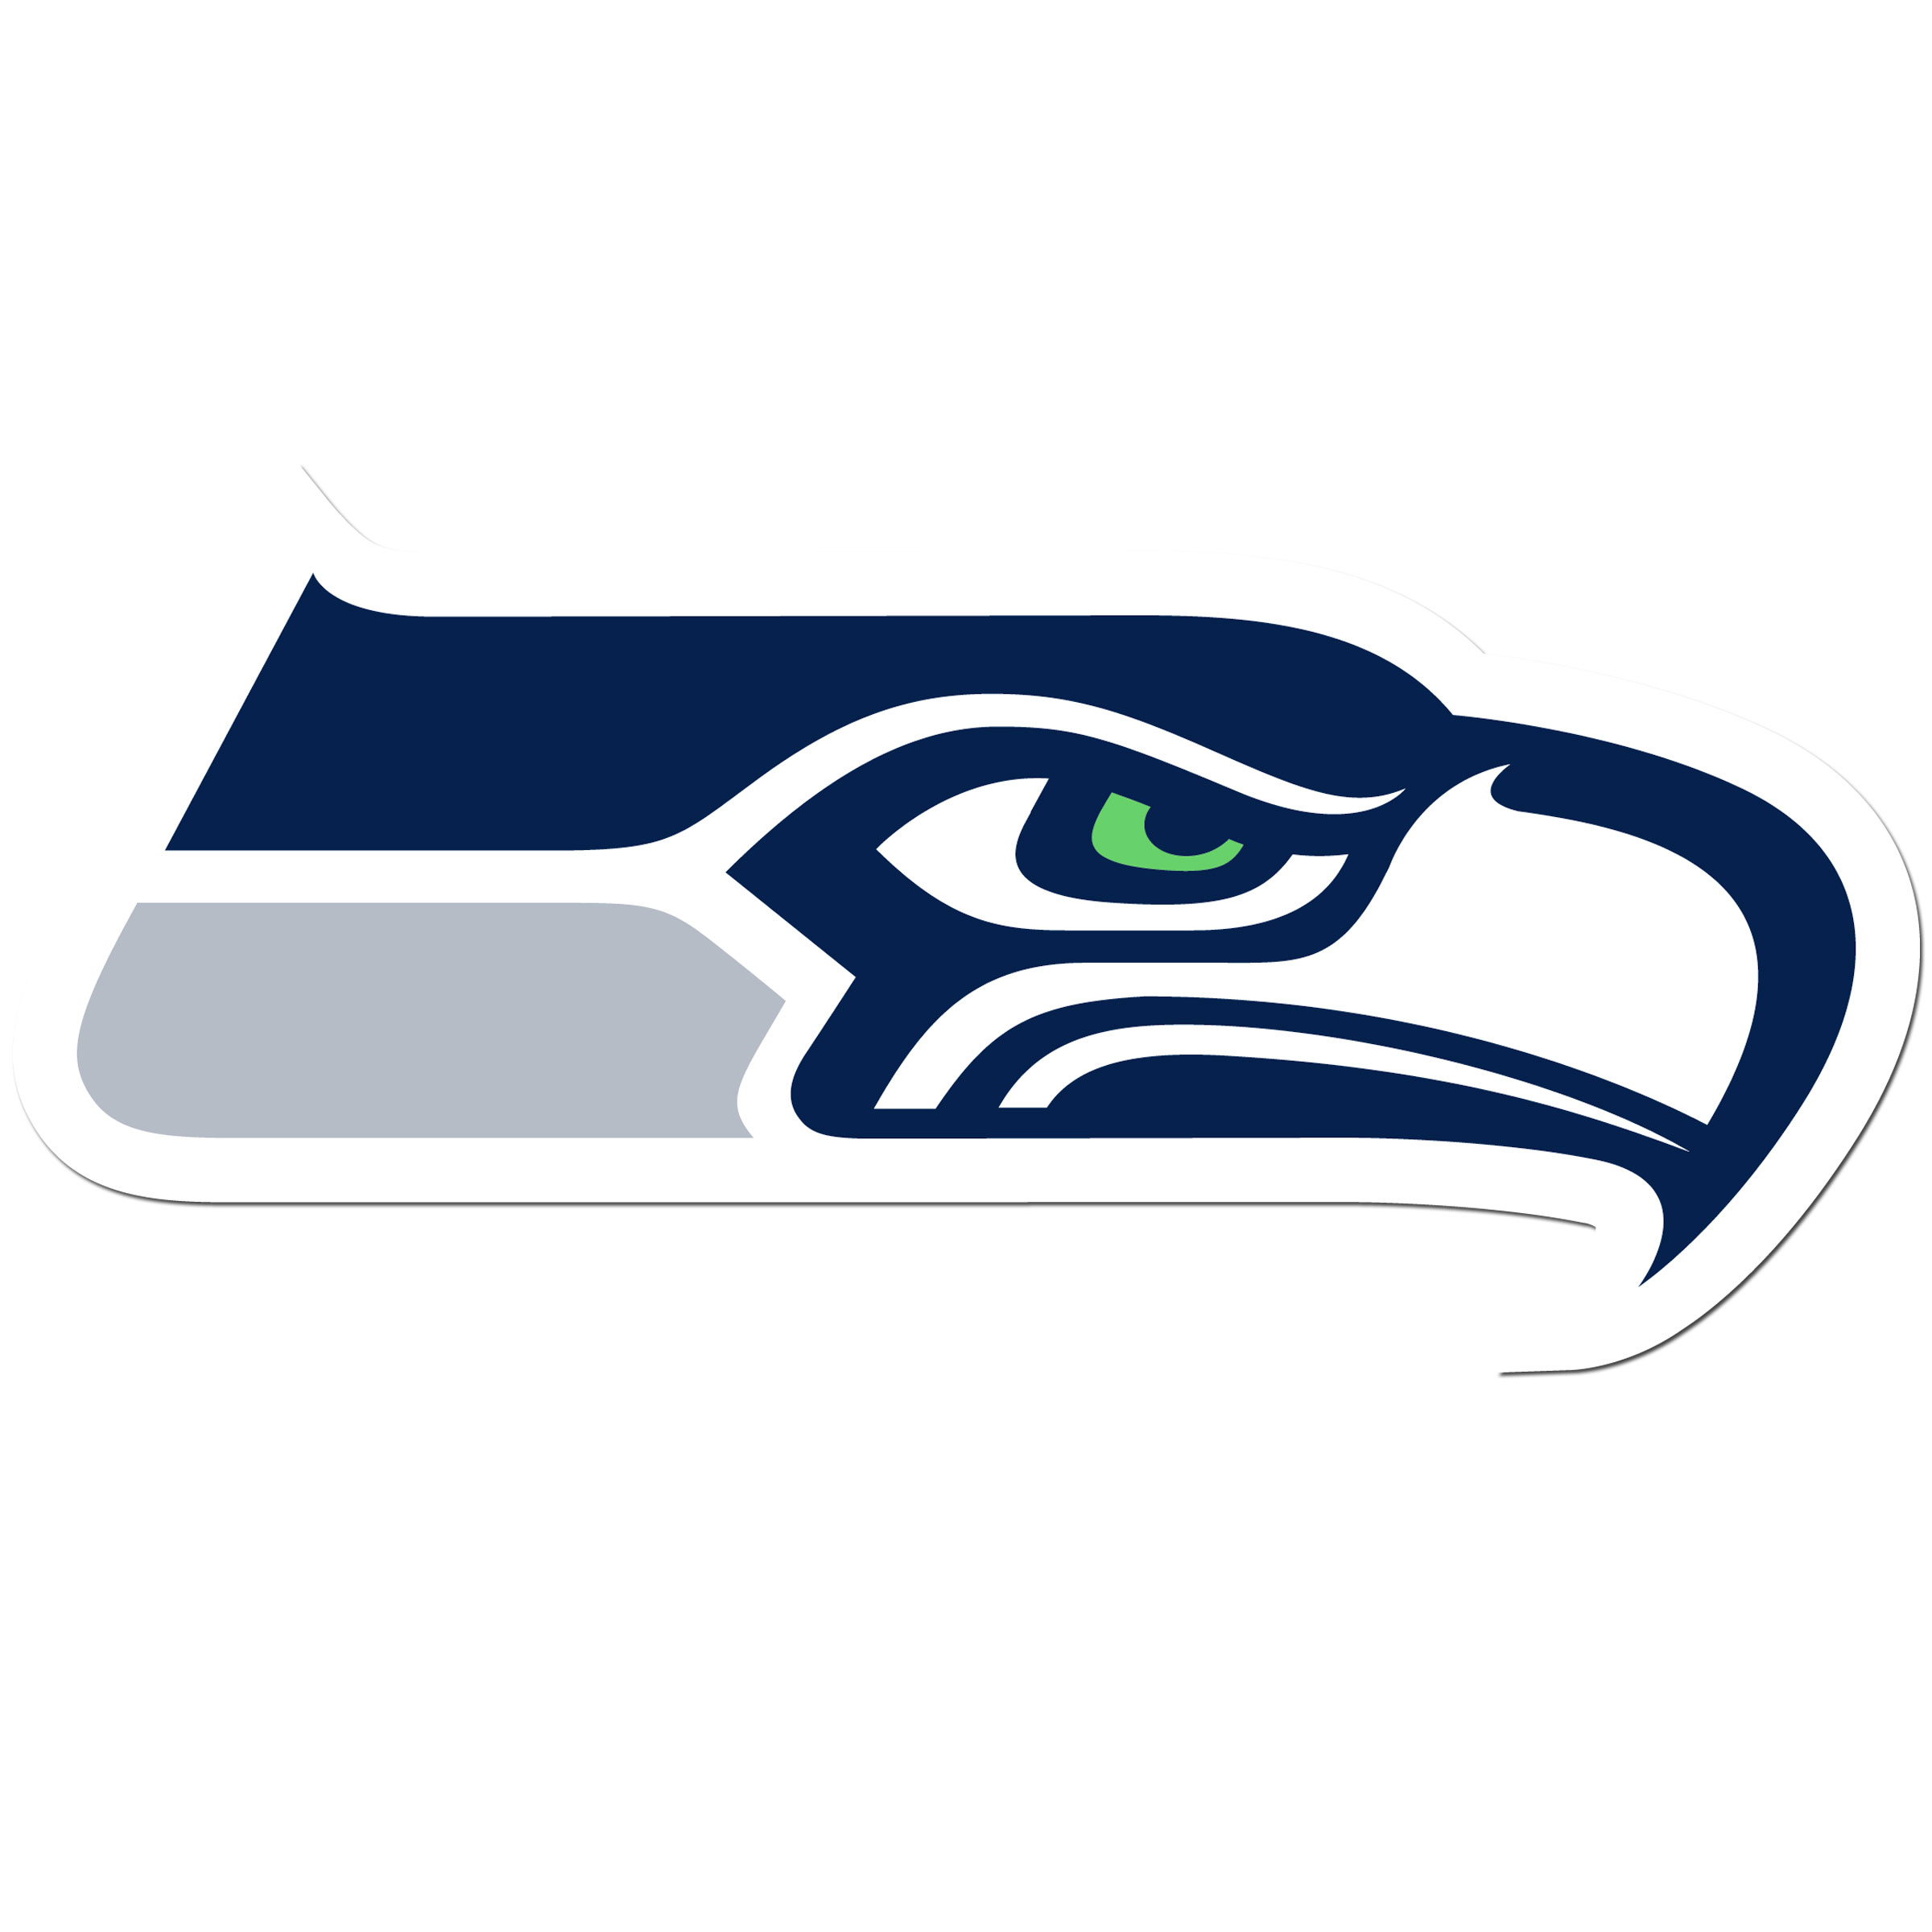 Seattle Seahawks 8 inch Auto Decal - This bold, 8 inch Seattle Seahawks is a great way to show off your team pride! The low tack vinyl decal is easily positioned and adjusted to make sure you get that logo in just the right spot on your vehicle. Designed to be used on the outside of the window.